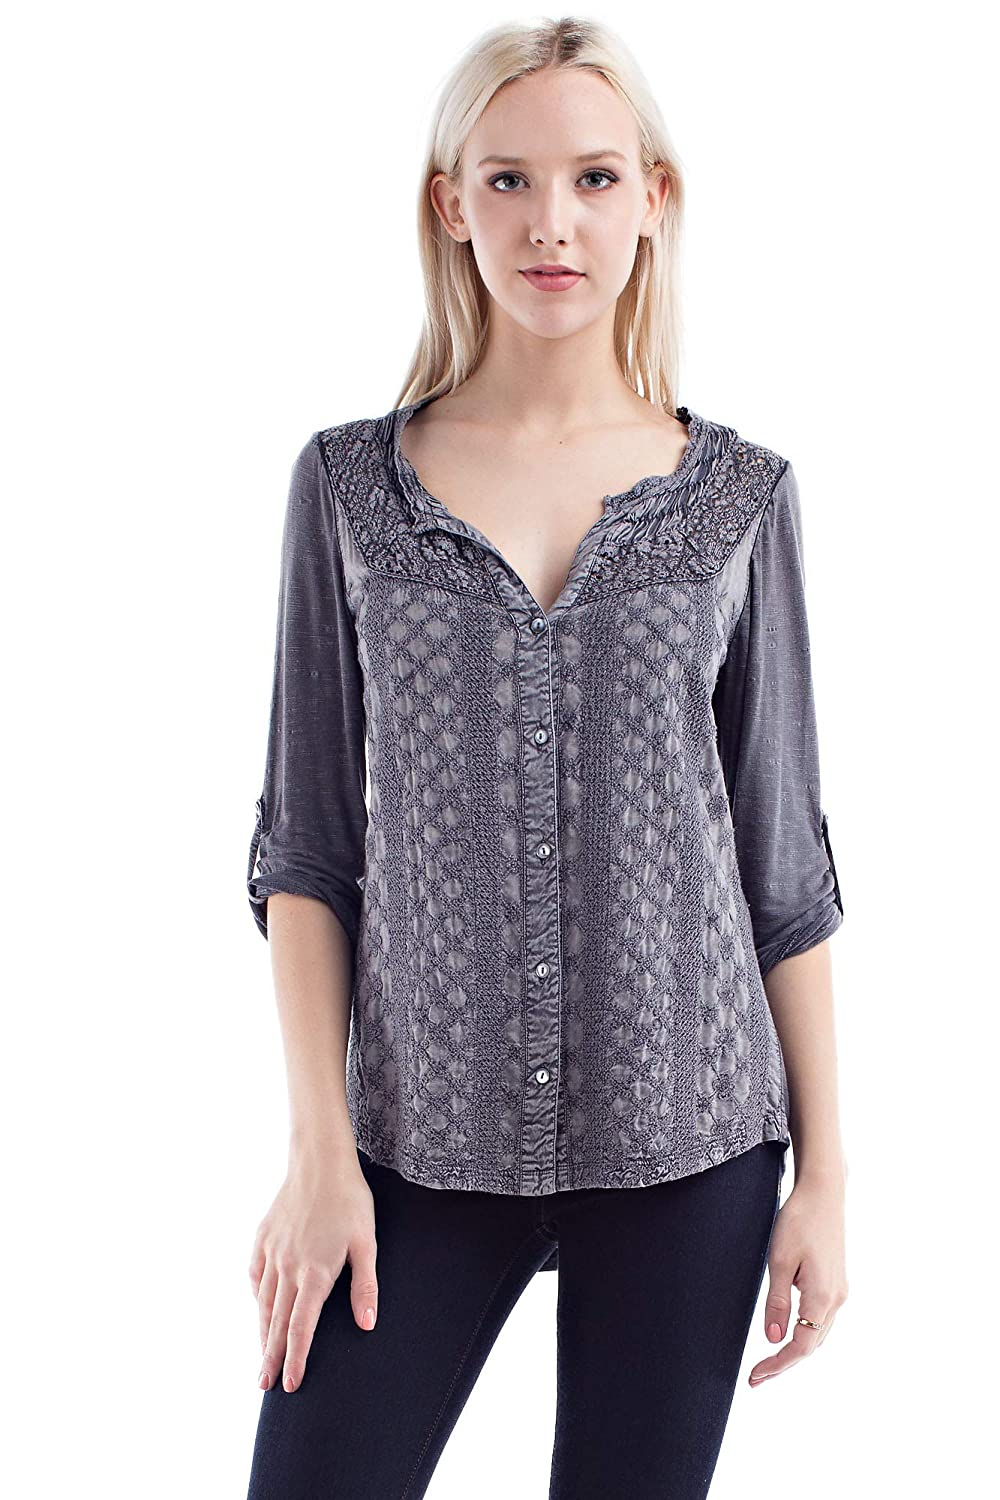 Charcoal Grey Solitaire Fitted Embroidery and Crochet Knit Back Button Down Blouse